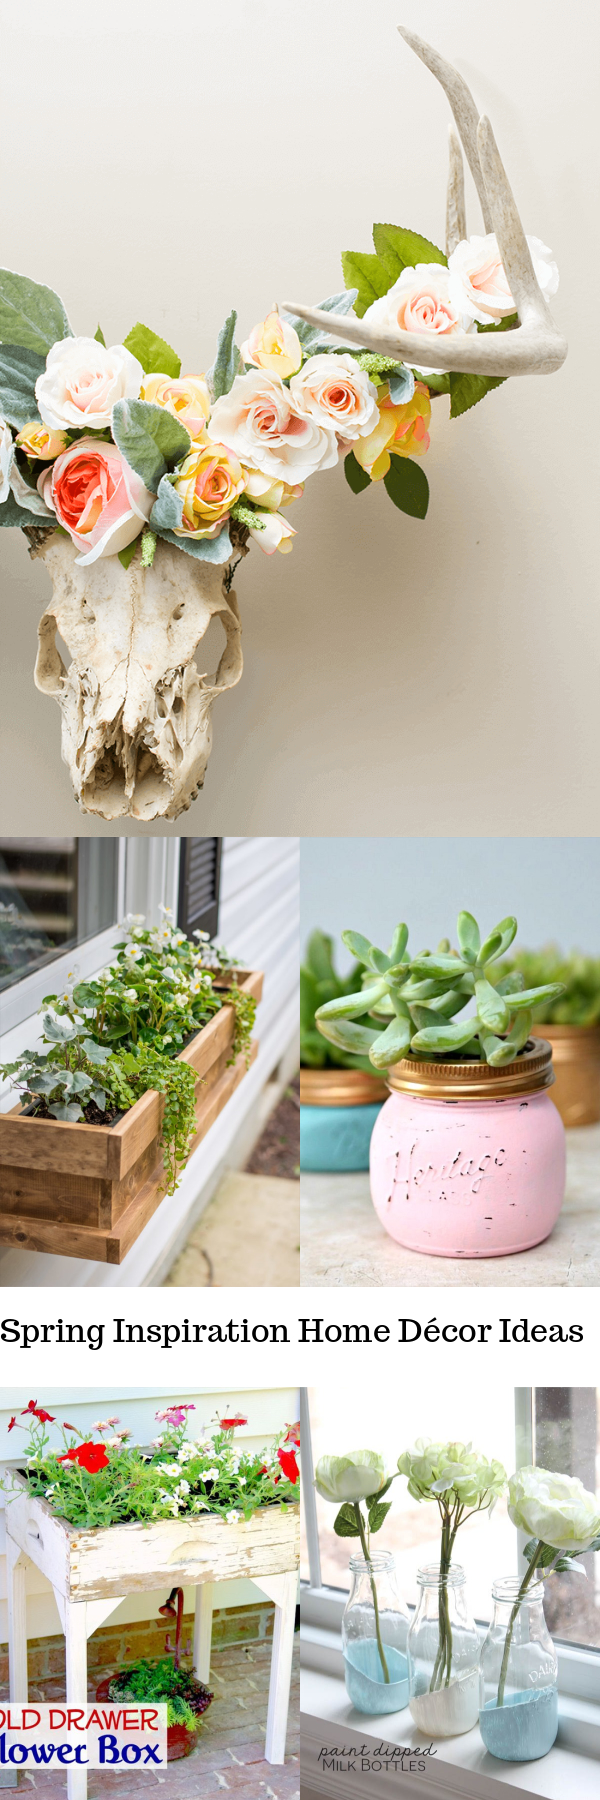 Spring Inspiration Home Dcor Ideas That Will Make Your